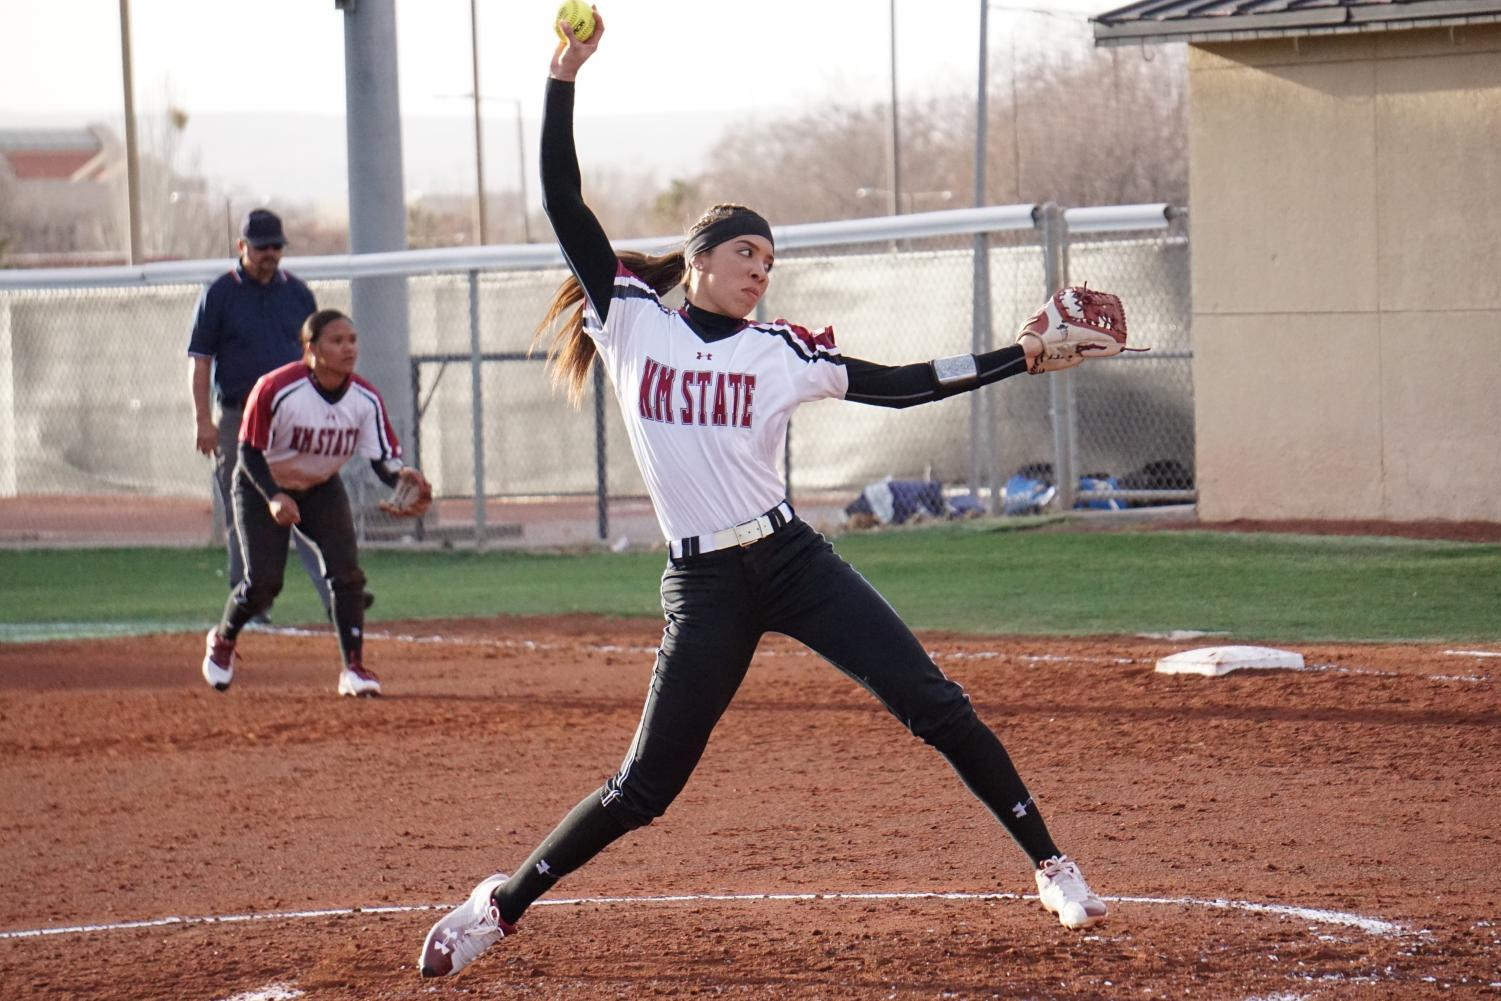 Kayla Green pitches a hard ball against the University of Kentucky Wildcats